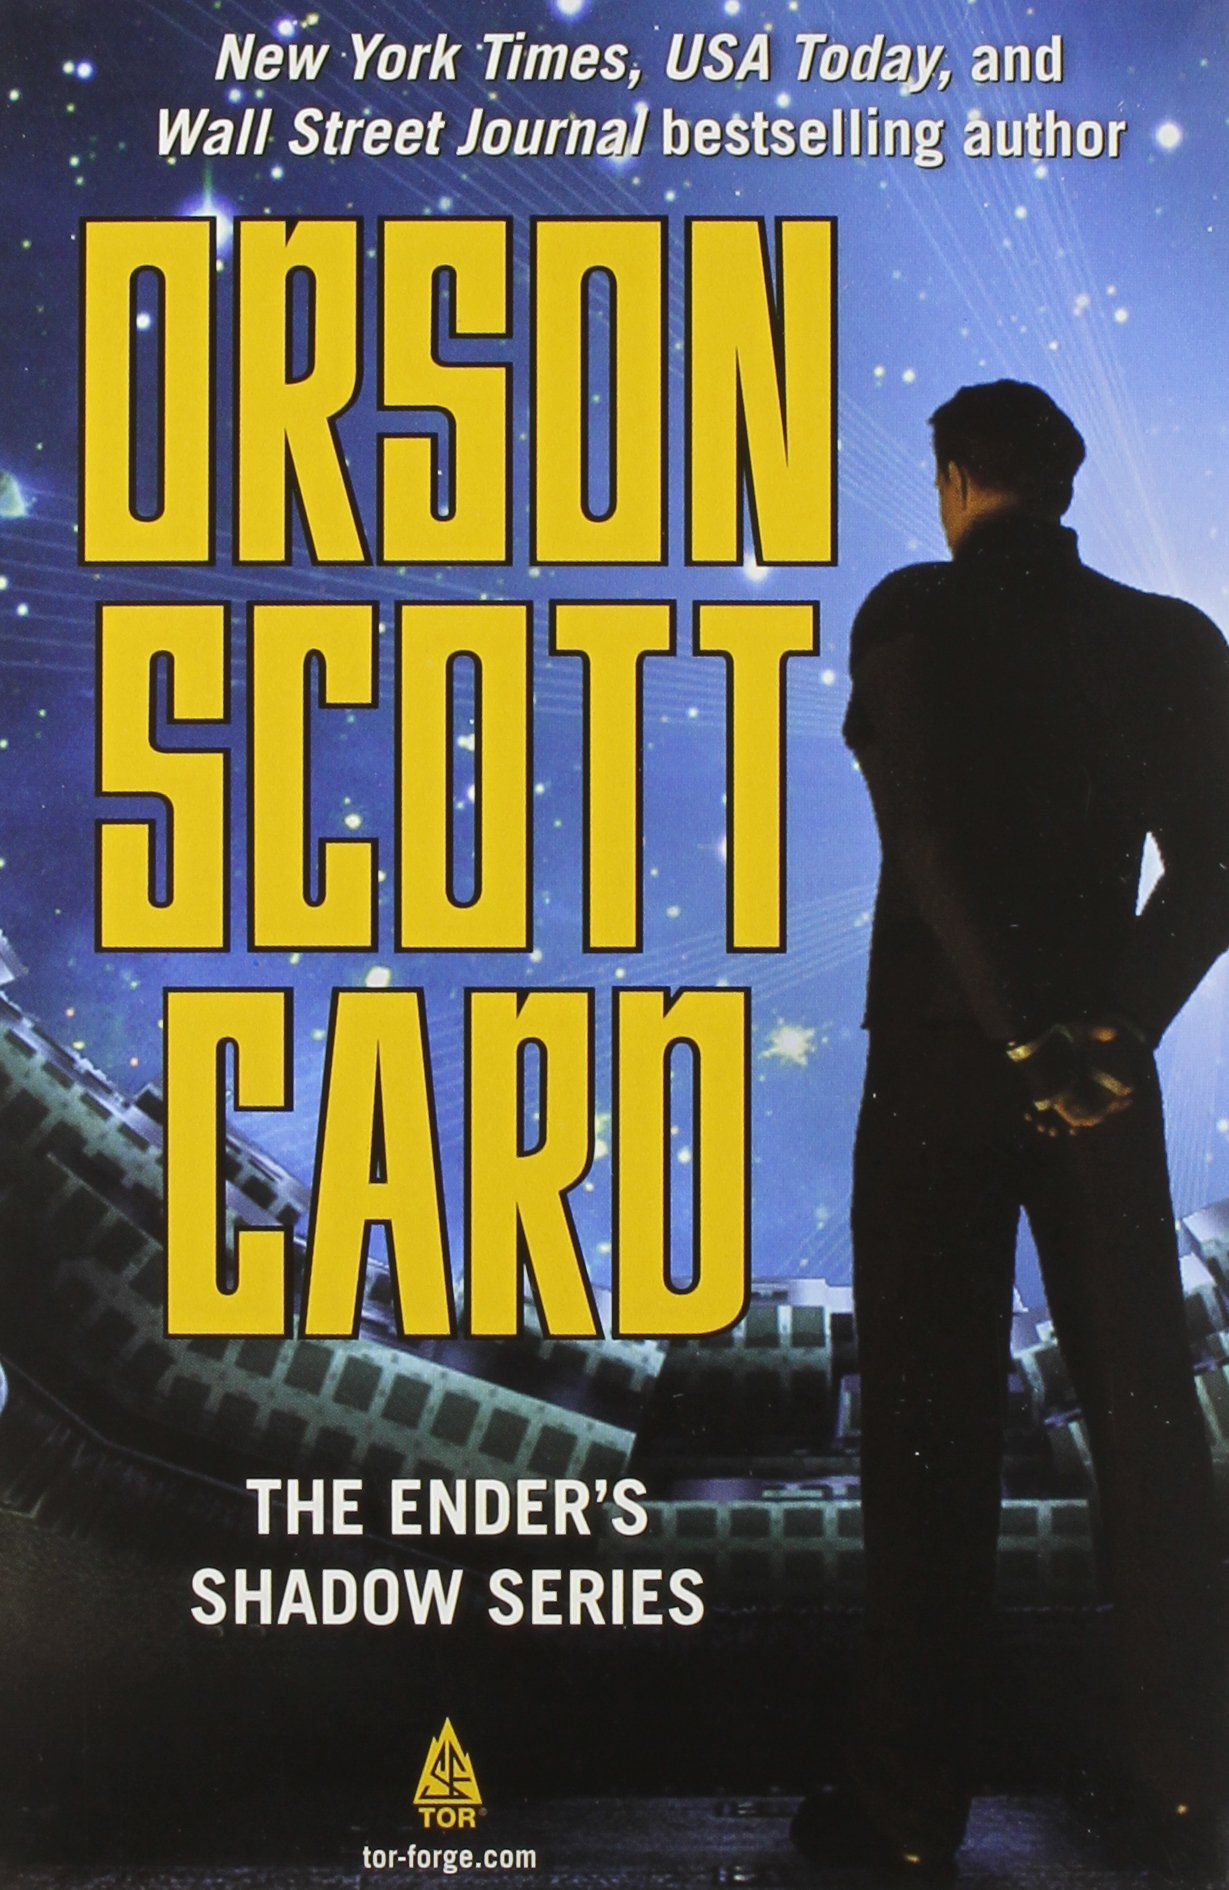 orson scott card essays Home :: about george :: on writing (essays) :: the preface that never was   when the envelope was ripped open, orson scott card was the winner card's.